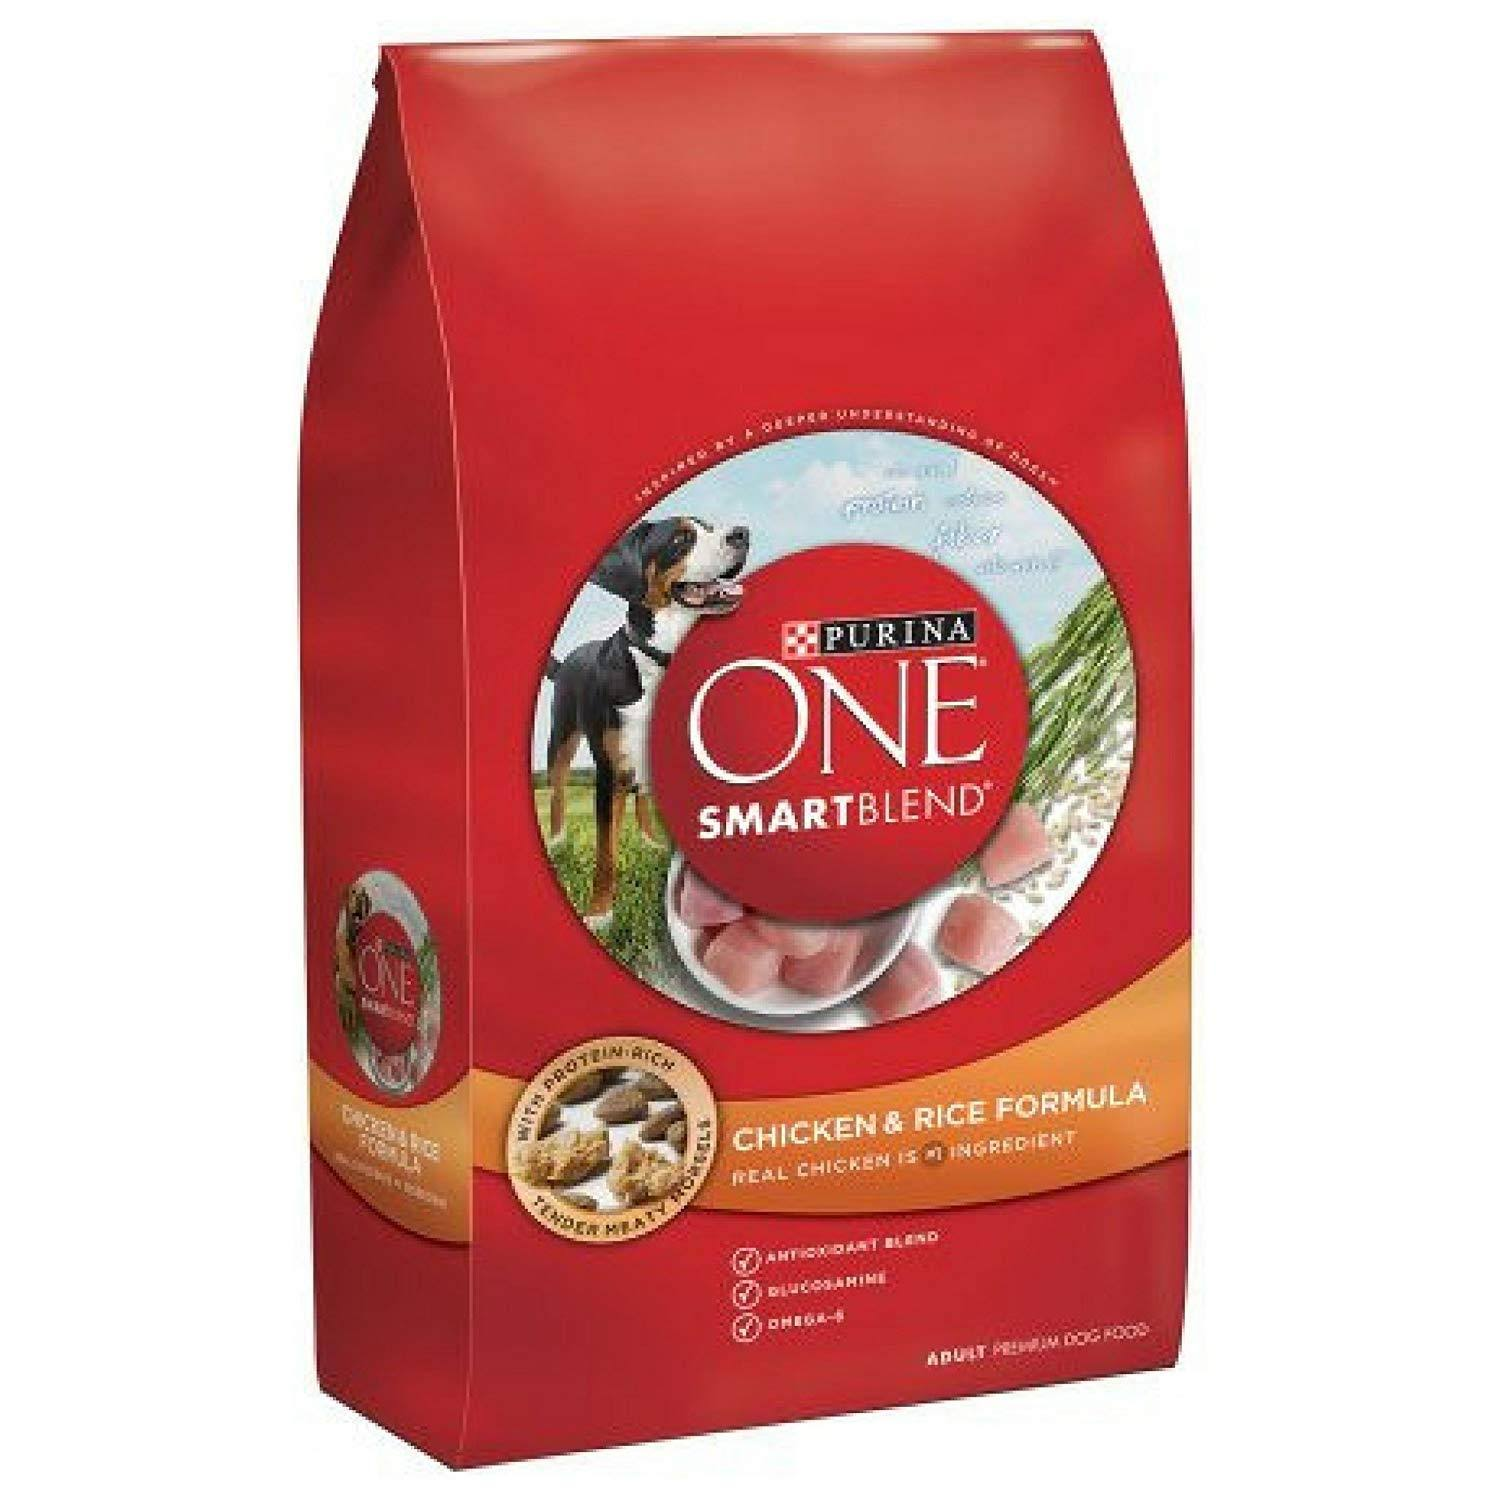 Purina One SmartBlend Lamb & Rice Formula Adult Premium Dry Dog Food, 16.5 lb